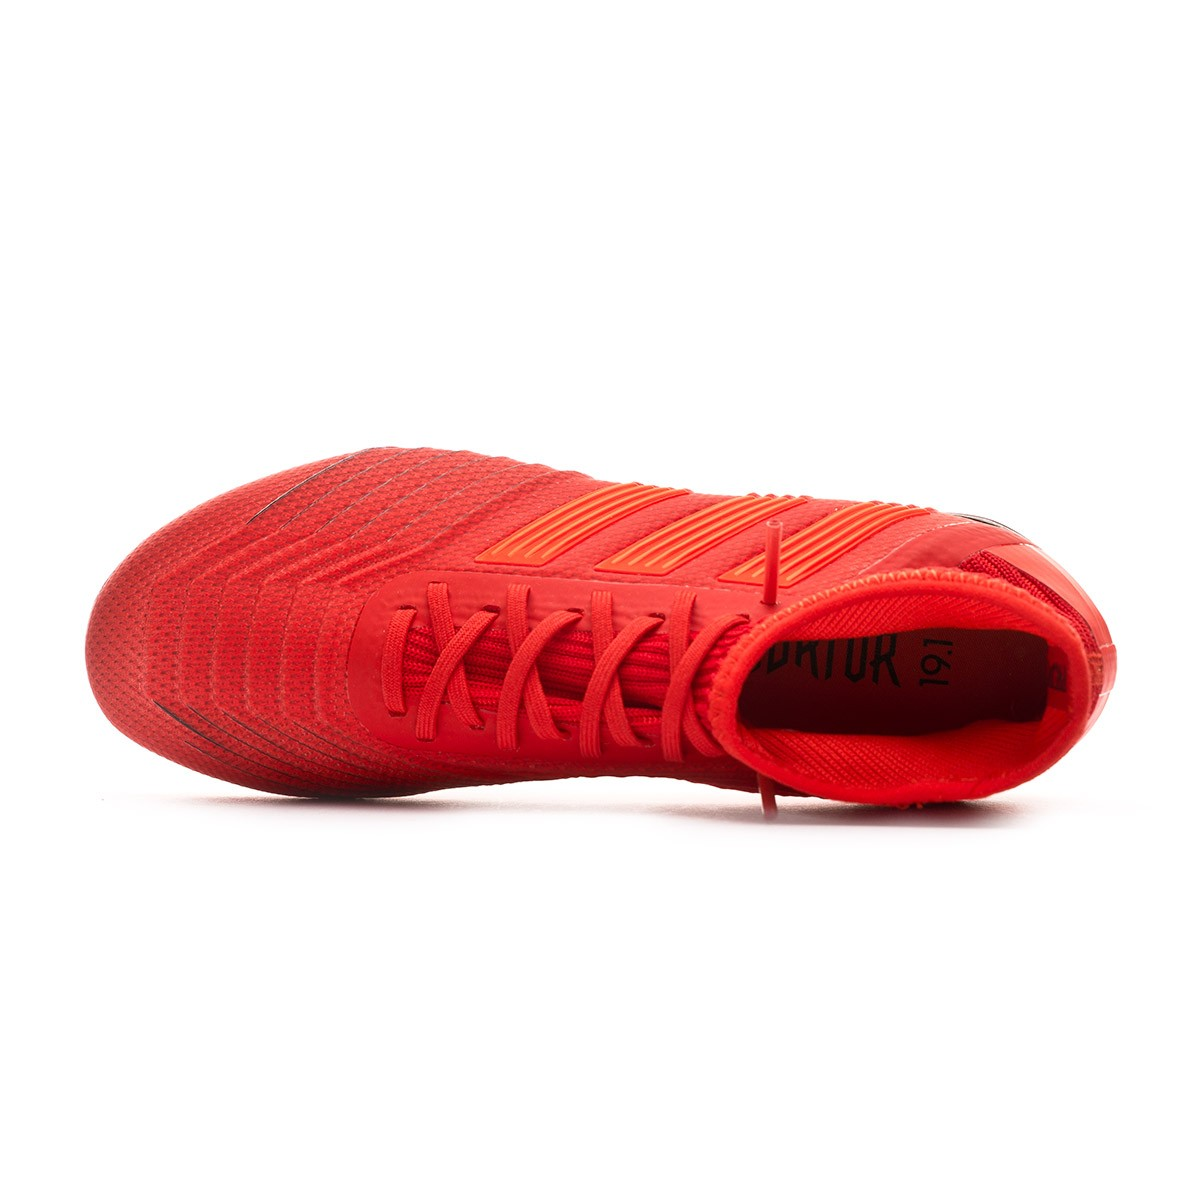 watch b36a1 94469 Boot adidas Kids Predator 19.1 FG Active red-Solar red-Core black - Leaked  soccer